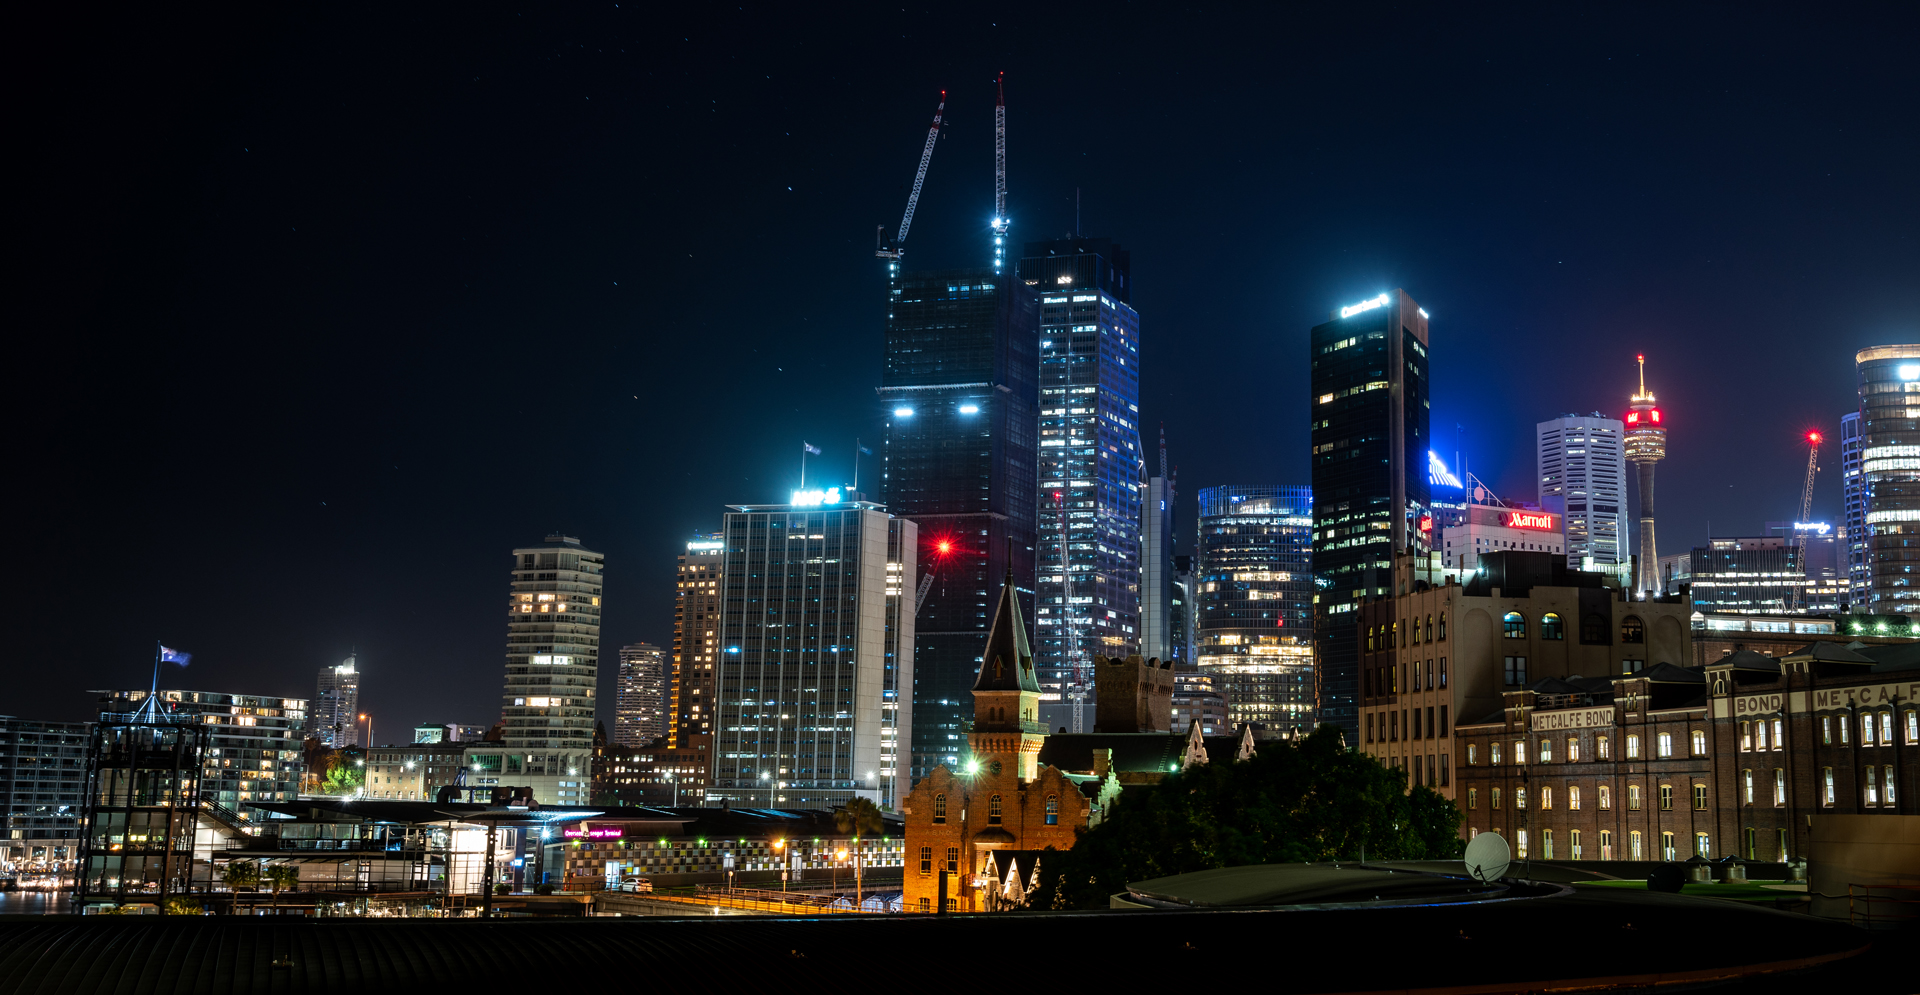 A view of Sydney office buildings at night